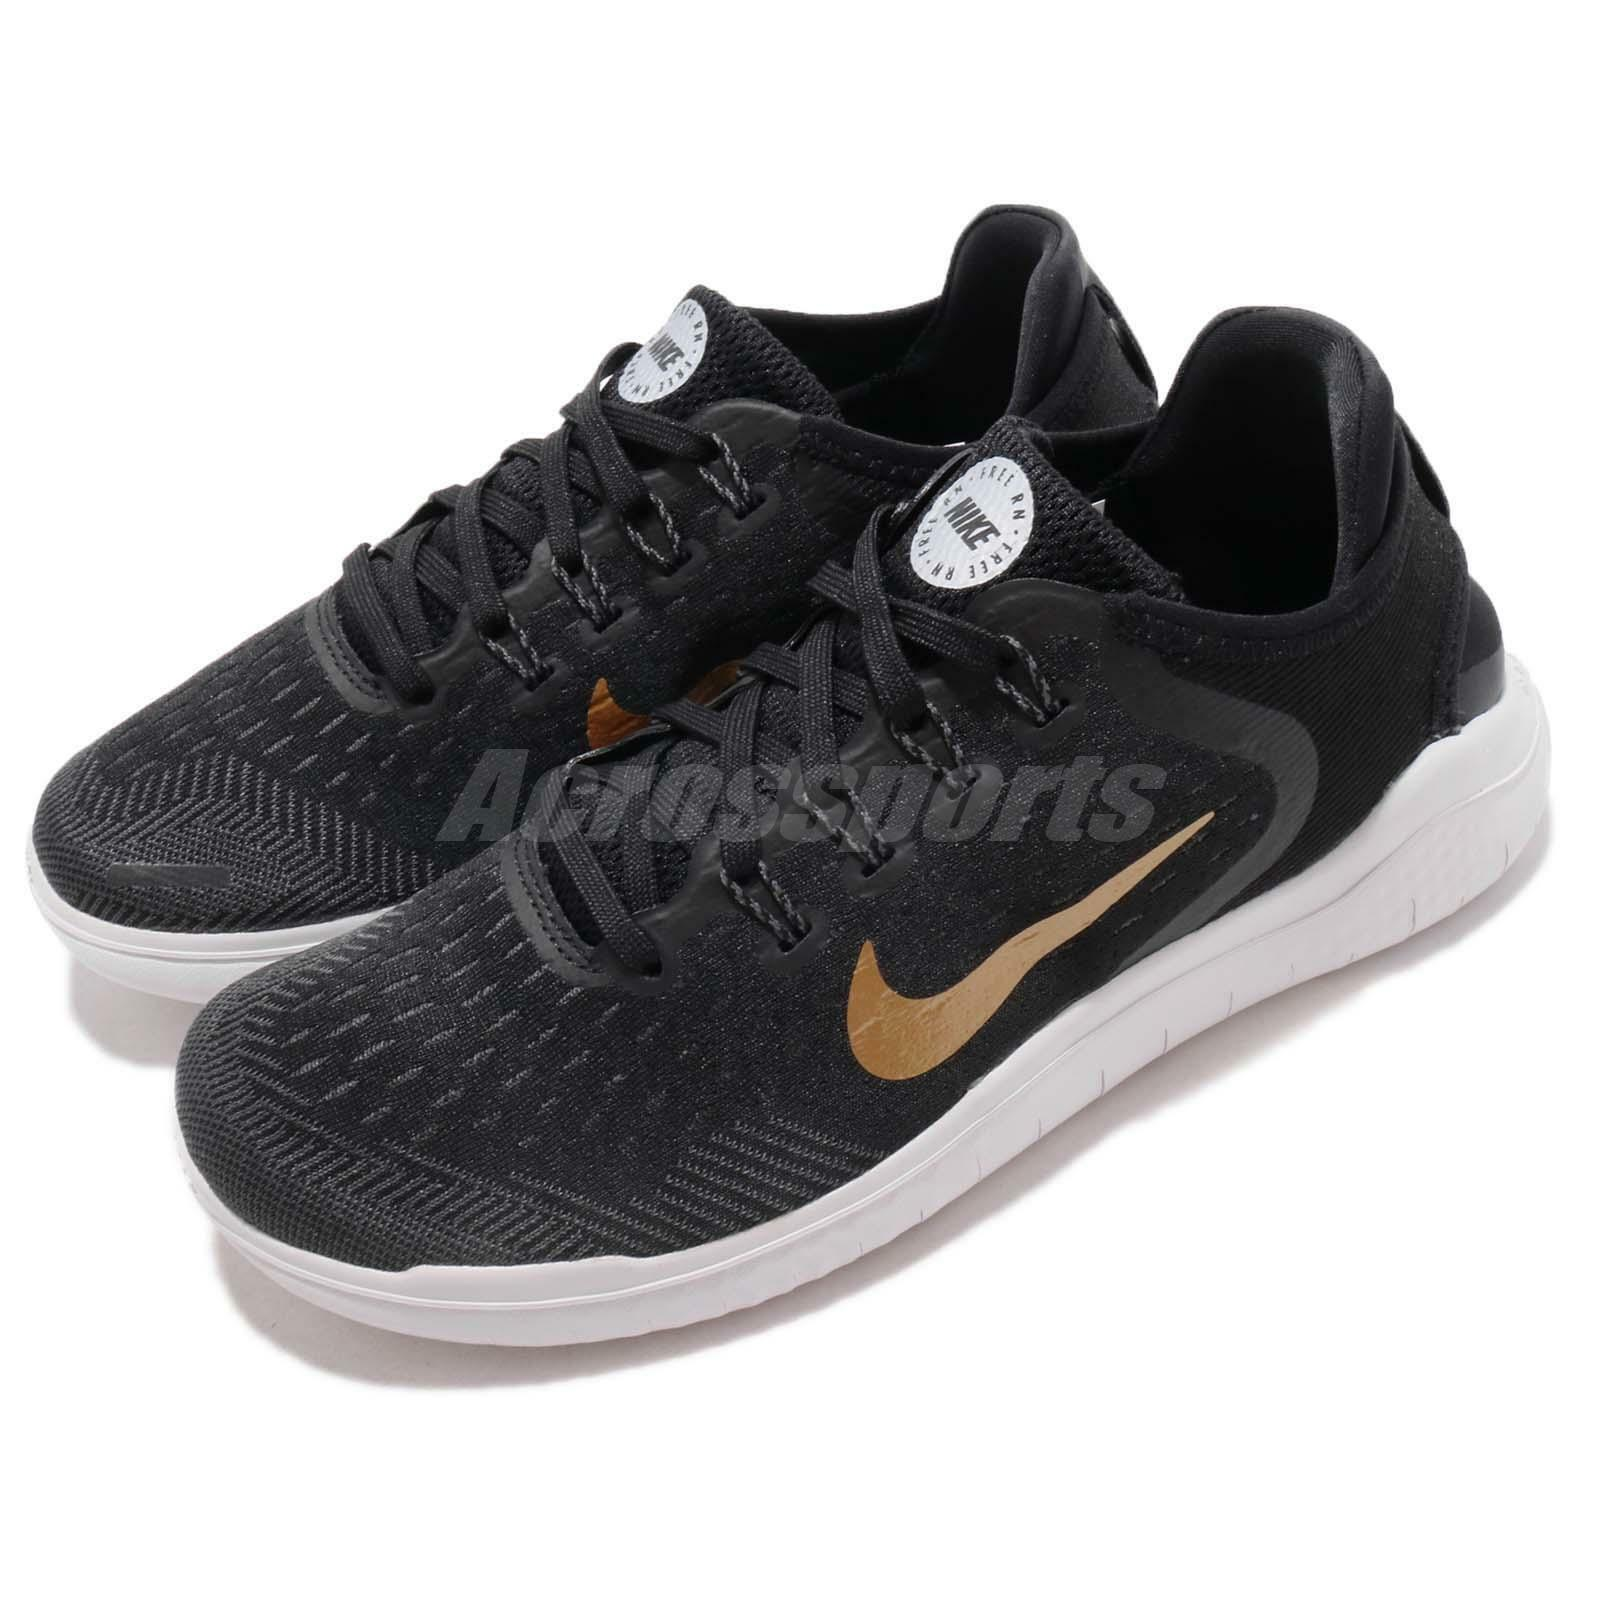 Nike Wmns Free RN 2018 Run Black gold Women Running shoes Sneakers 942837-008